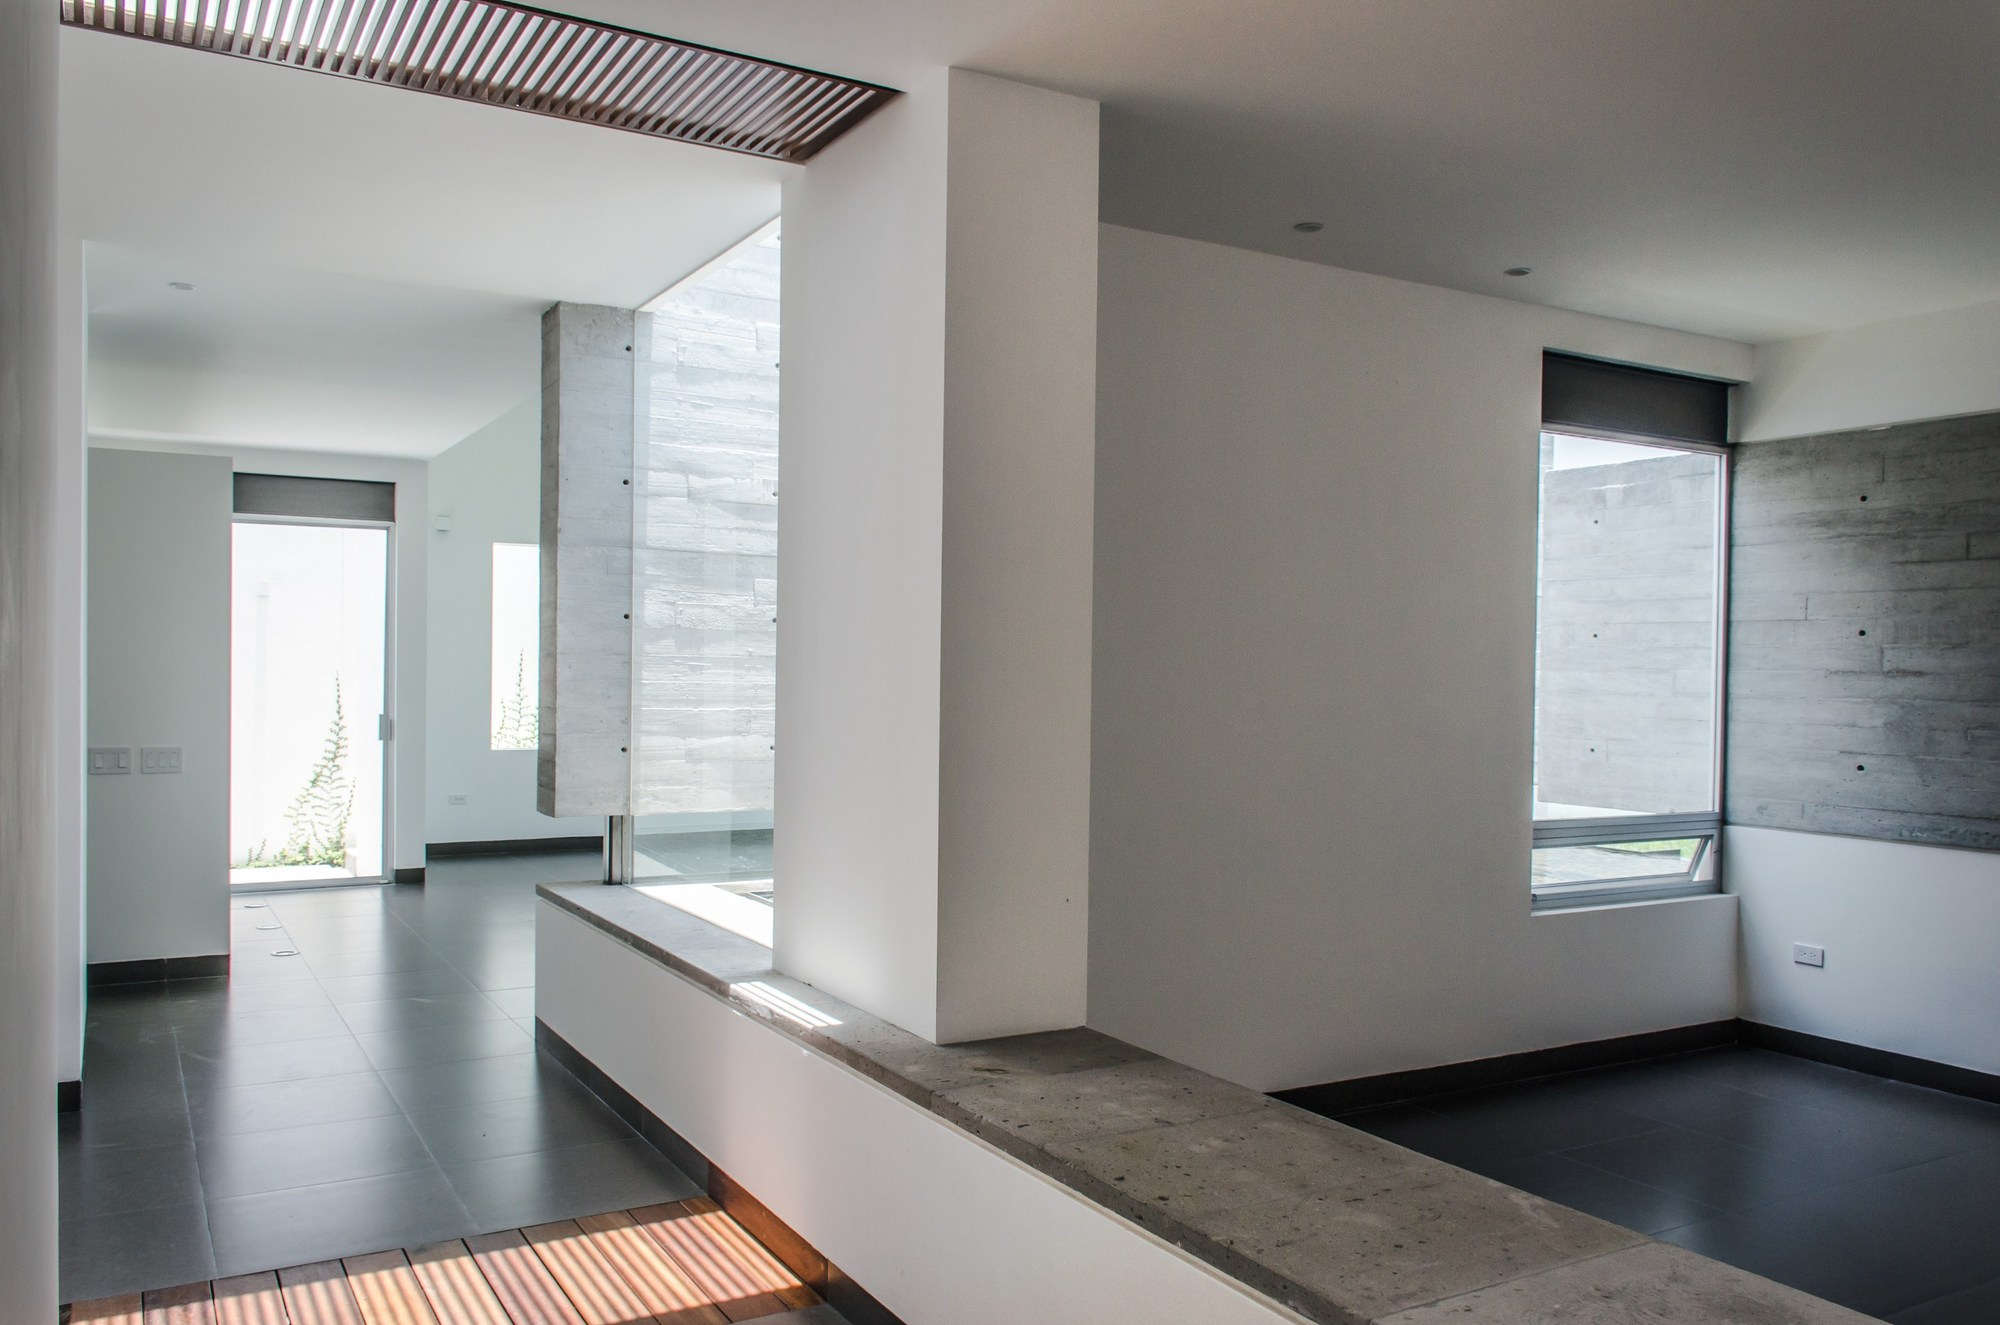 Gallery of t02 adi arquitectura y dise o interior 14 for Adi arquitectura y diseno interior